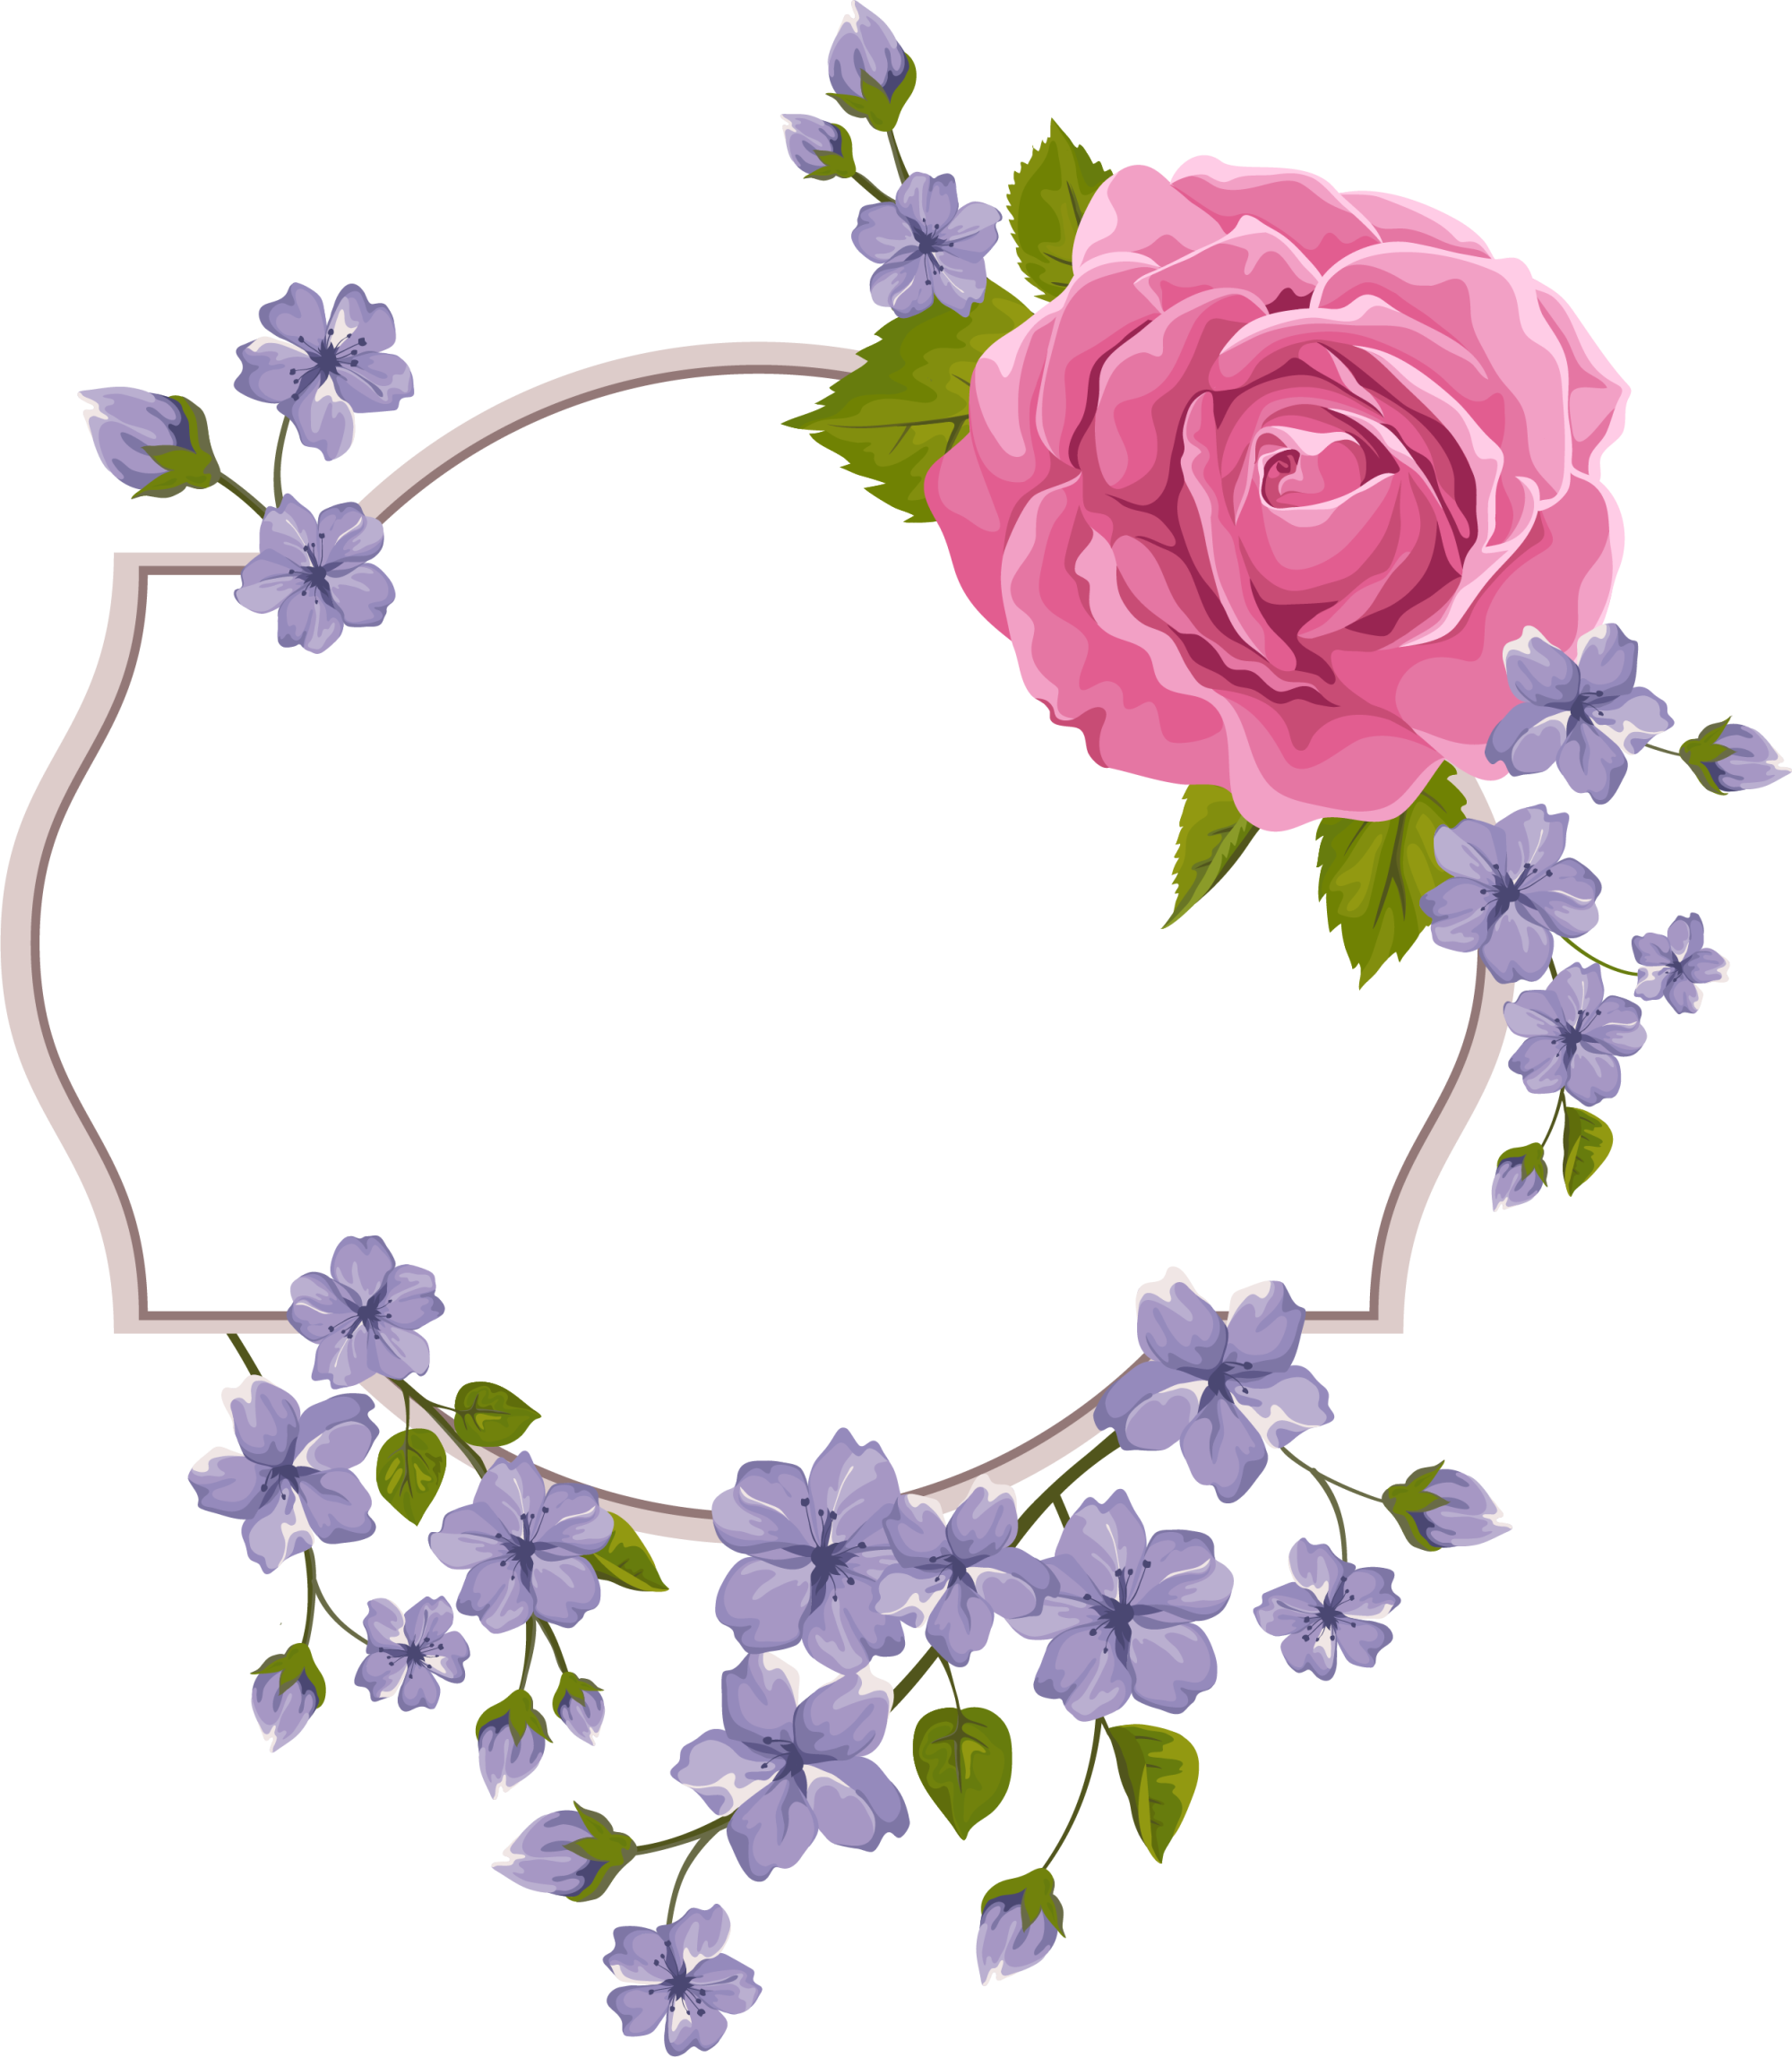 Flower Purple Frame Violet Invitation Wedding PNG Image